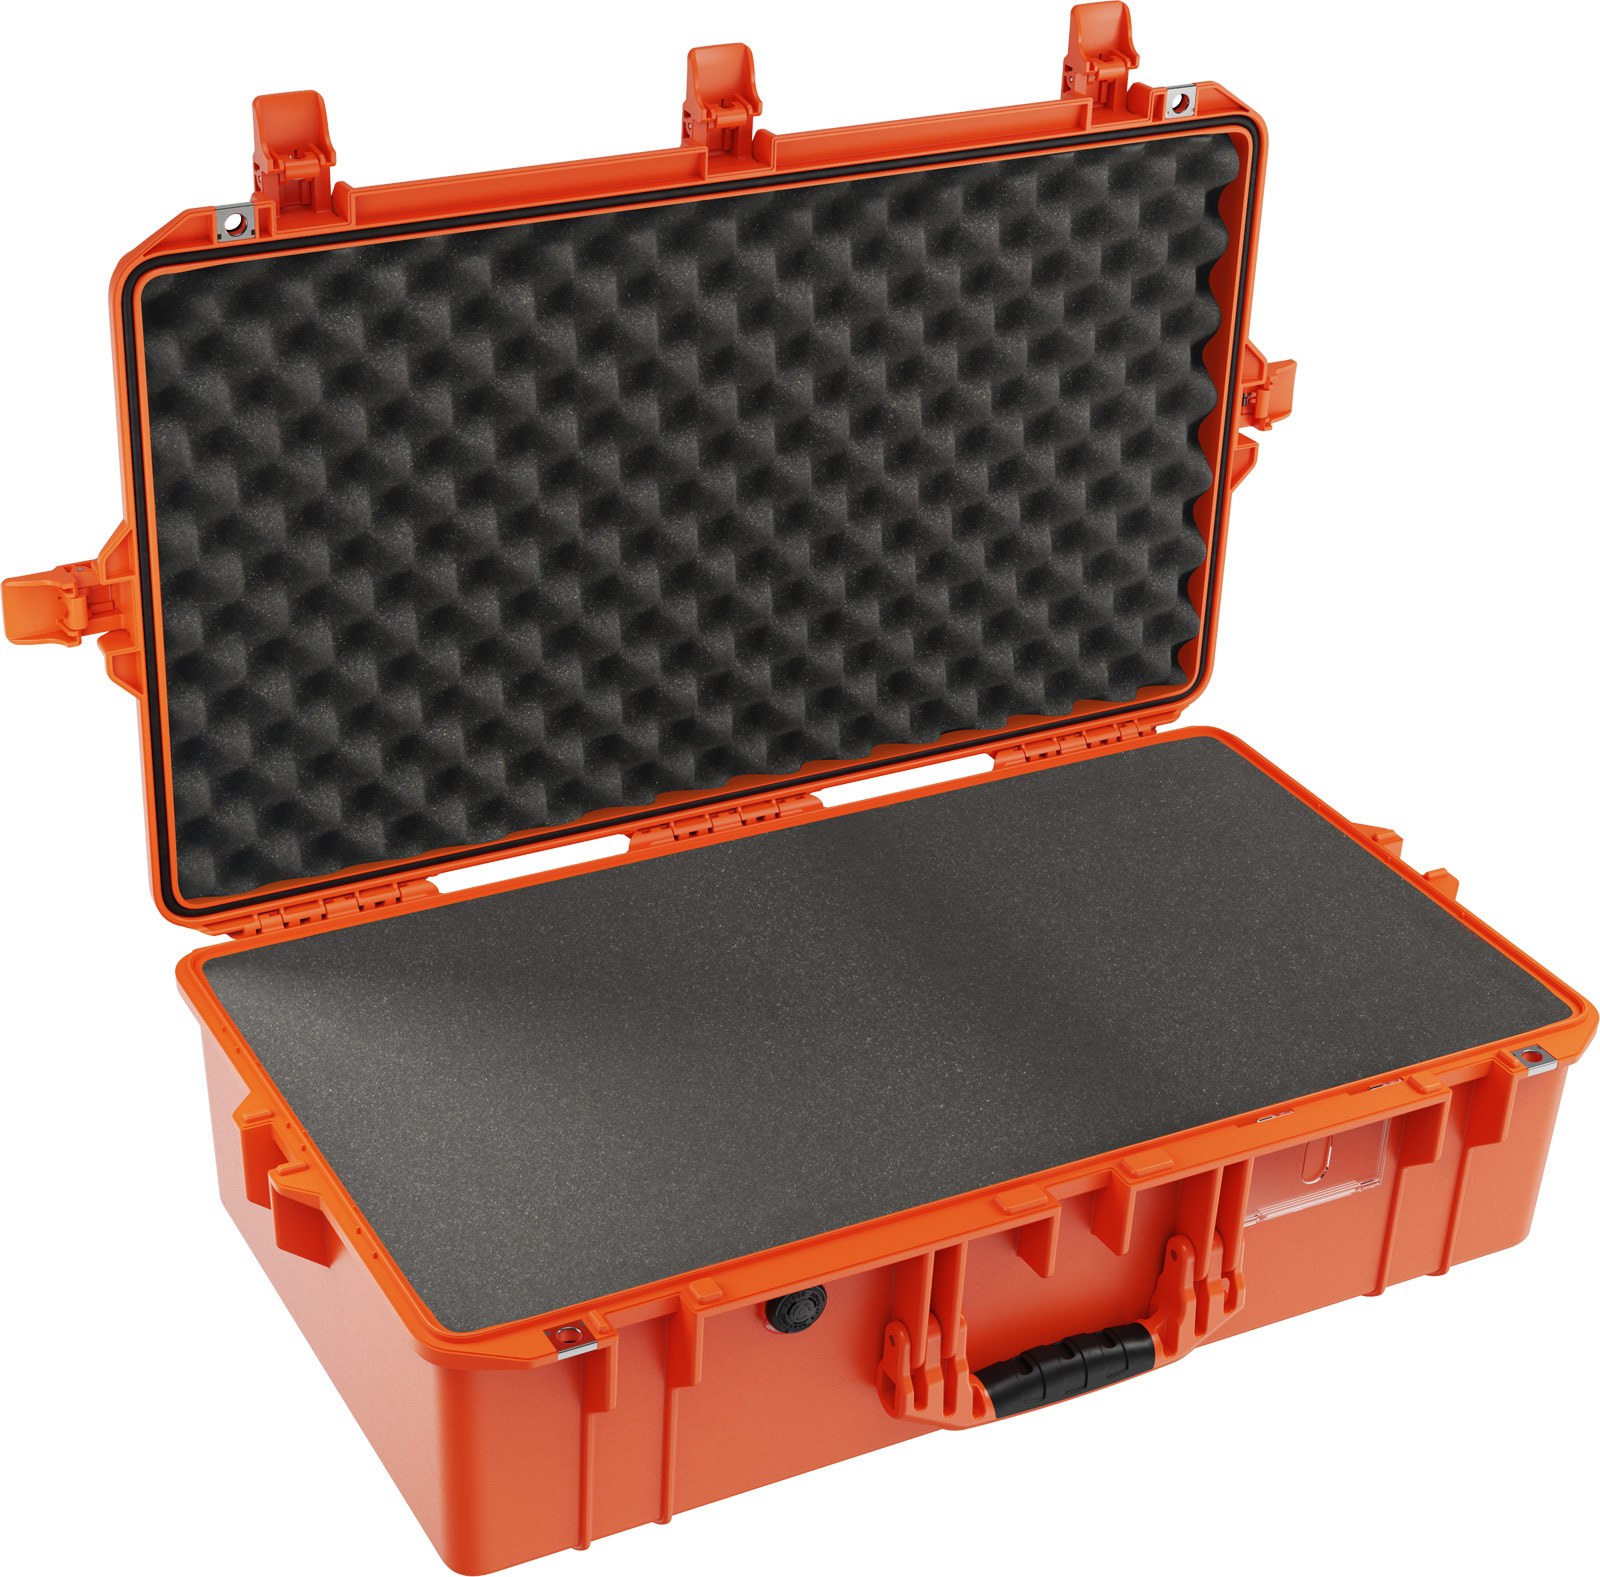 buy pelican air 1605 shop orange camera case